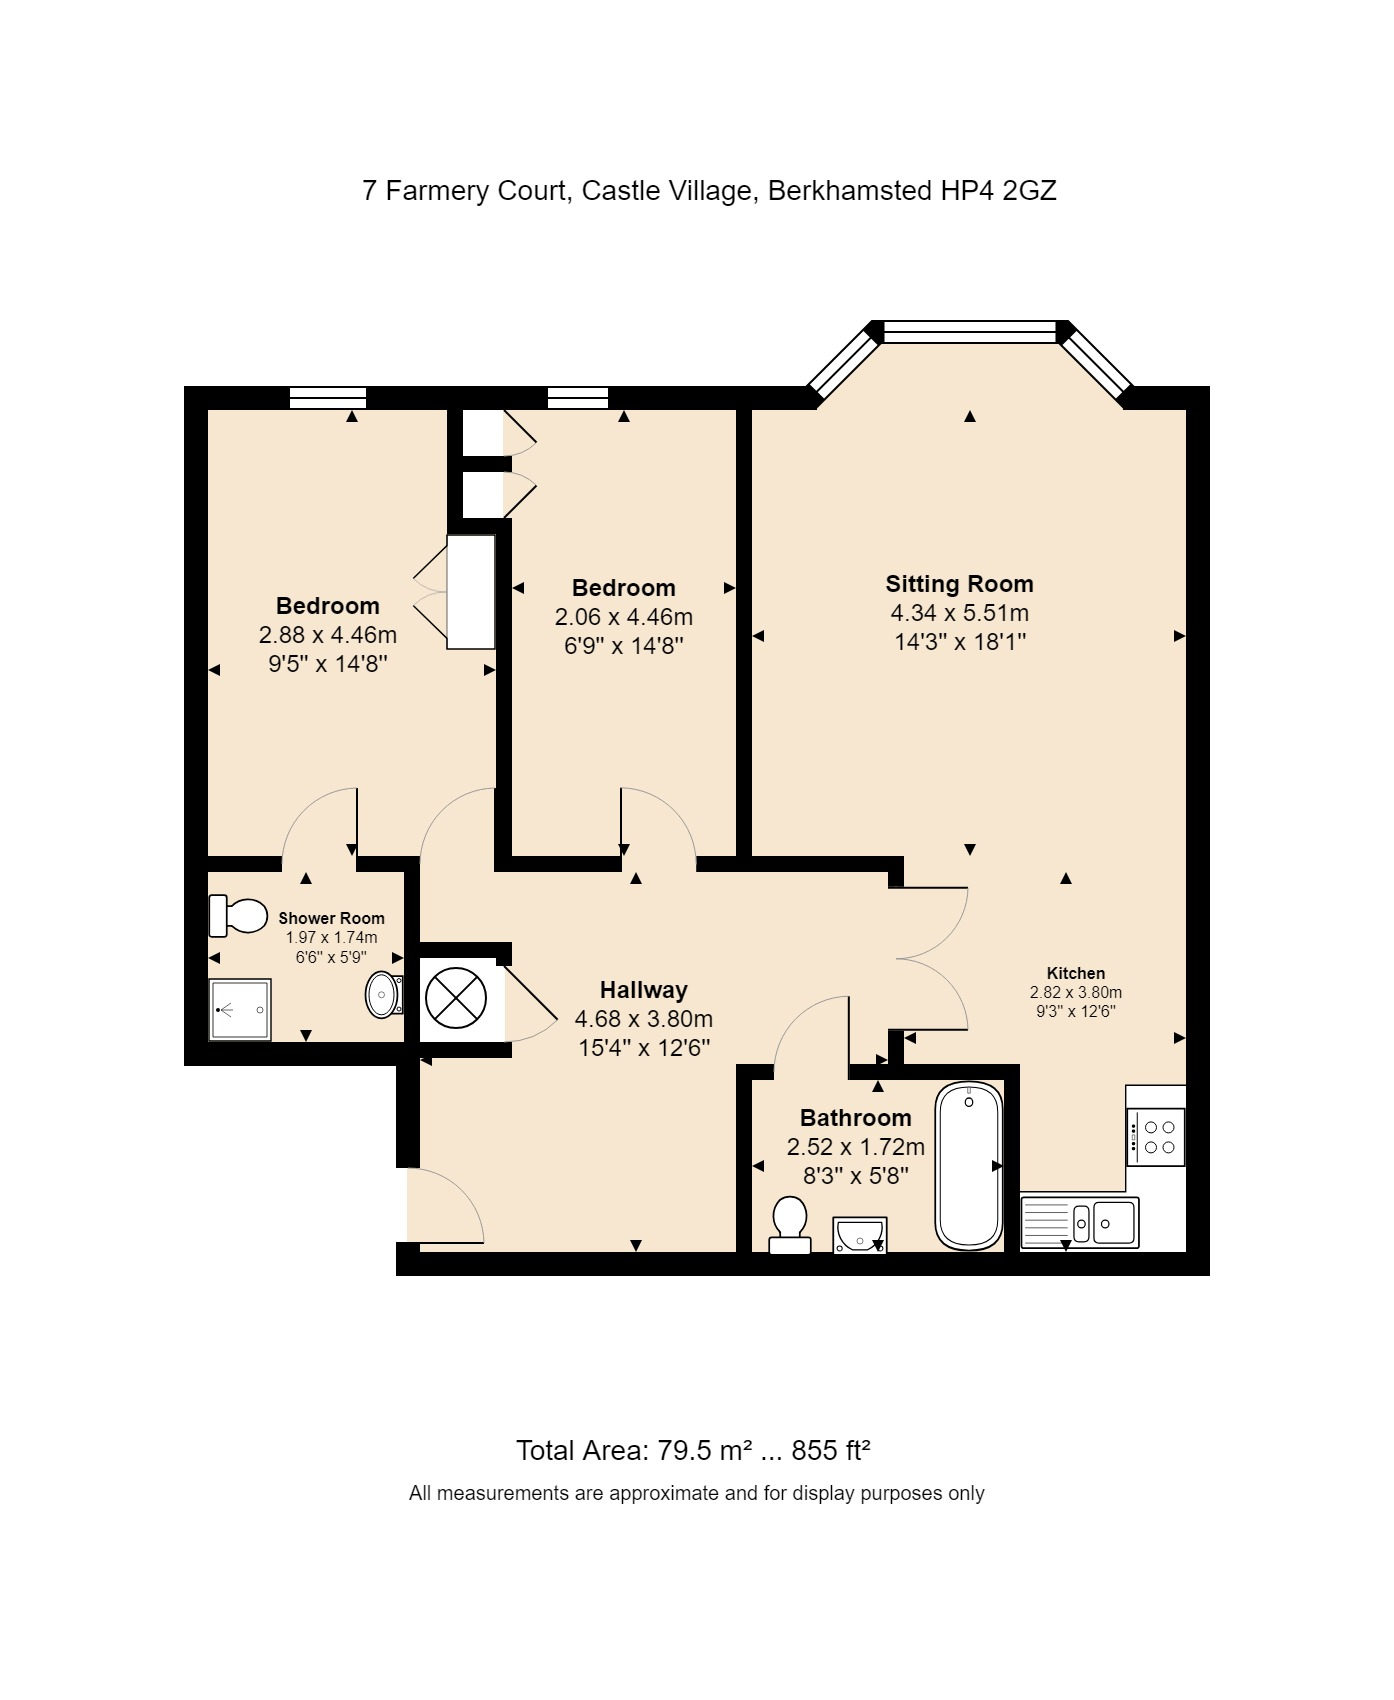 7 Farmery Court Floorplan